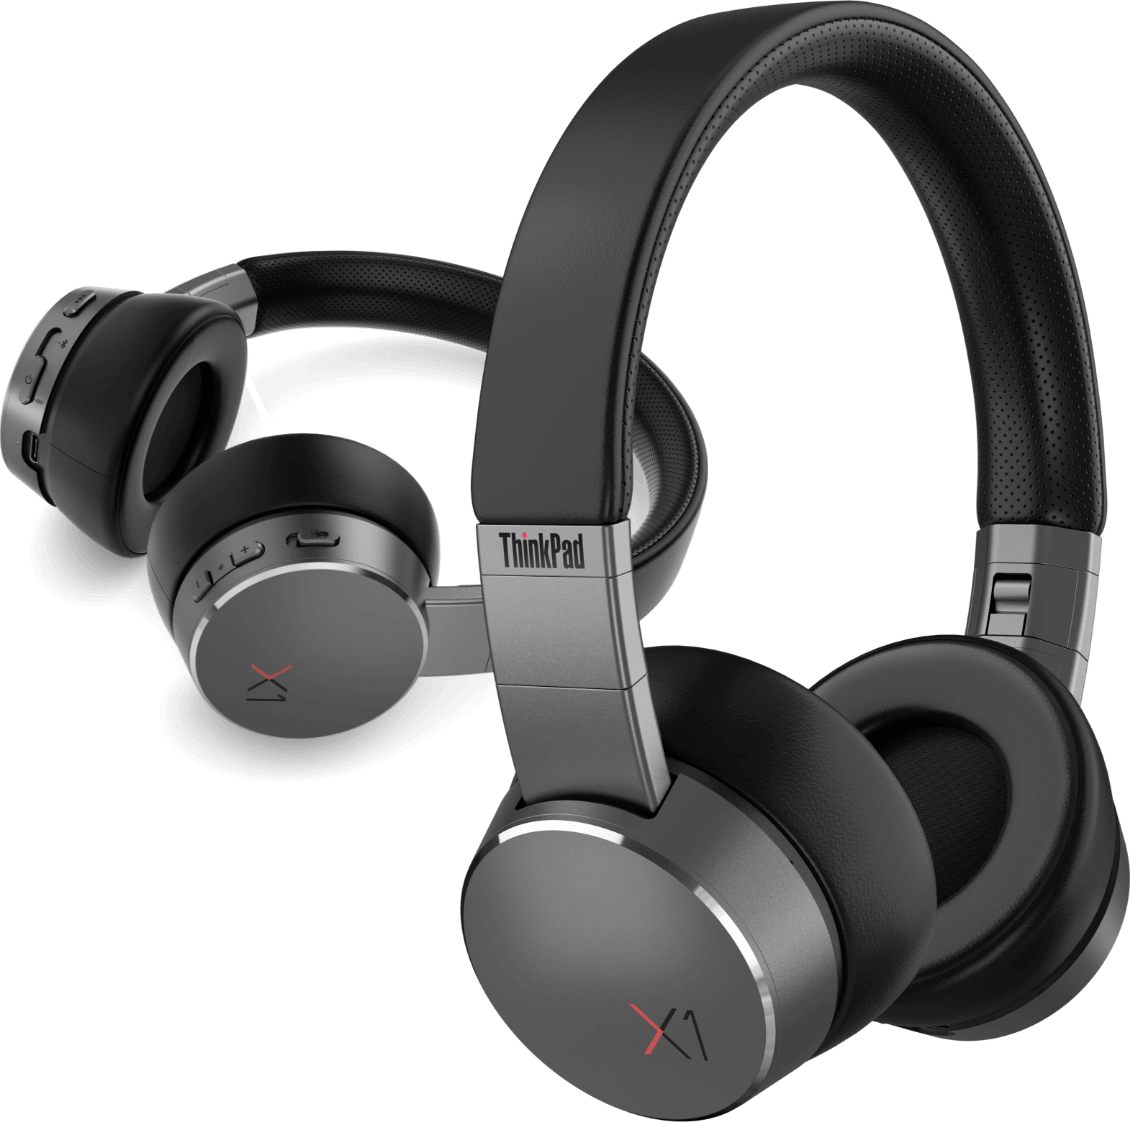 Lenovo ThinkPad X1 ANC headphones closeup view